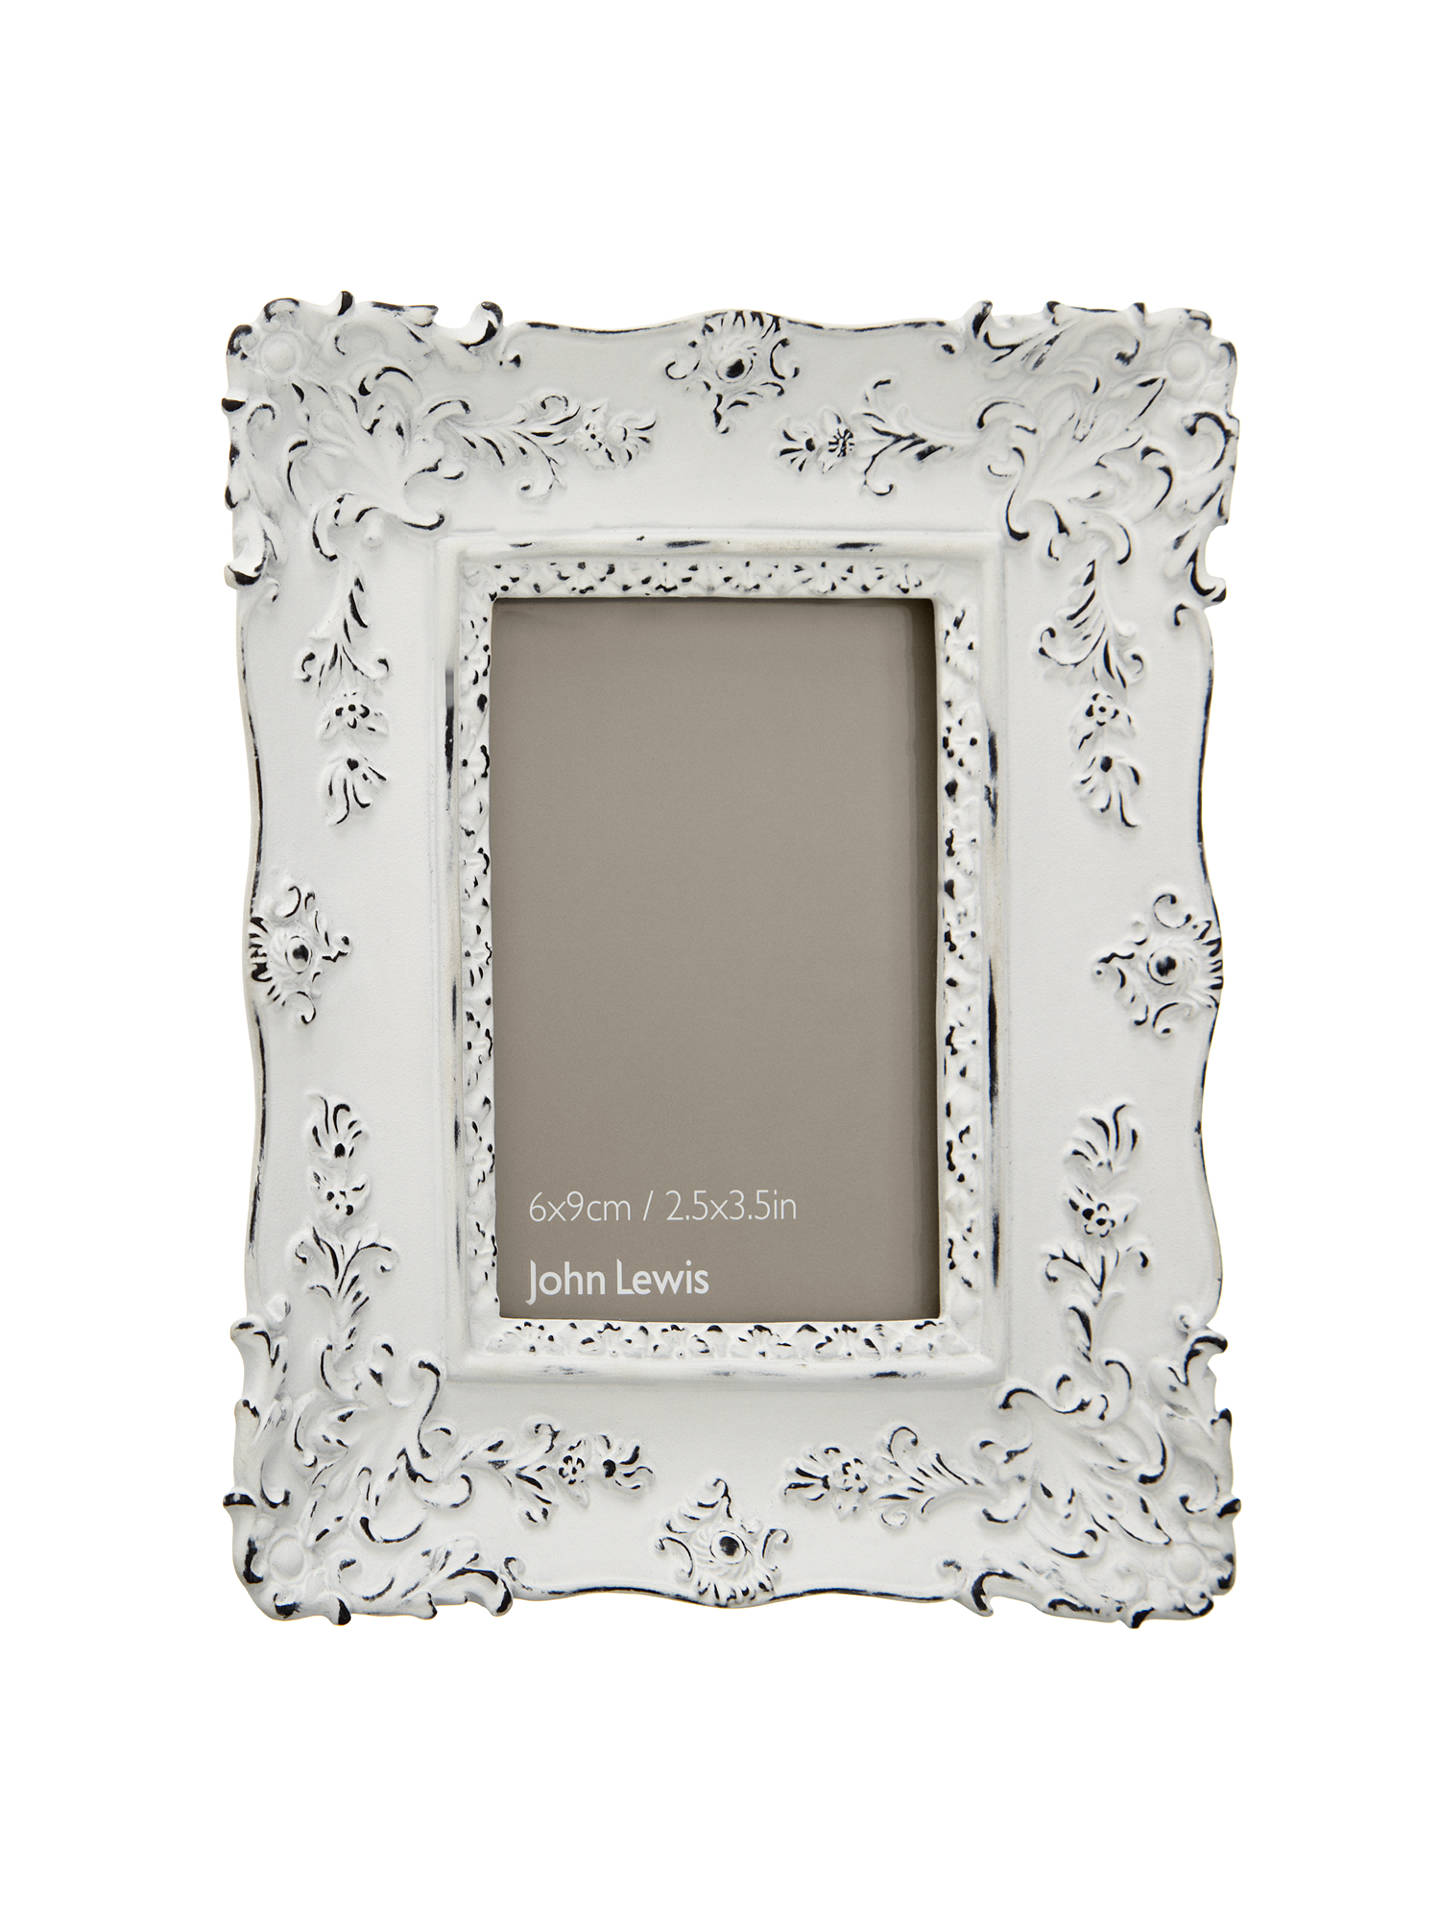 John Lewis French Photo Frame, White, 2.5 x 3.5 (6 x 9cm) at John ...